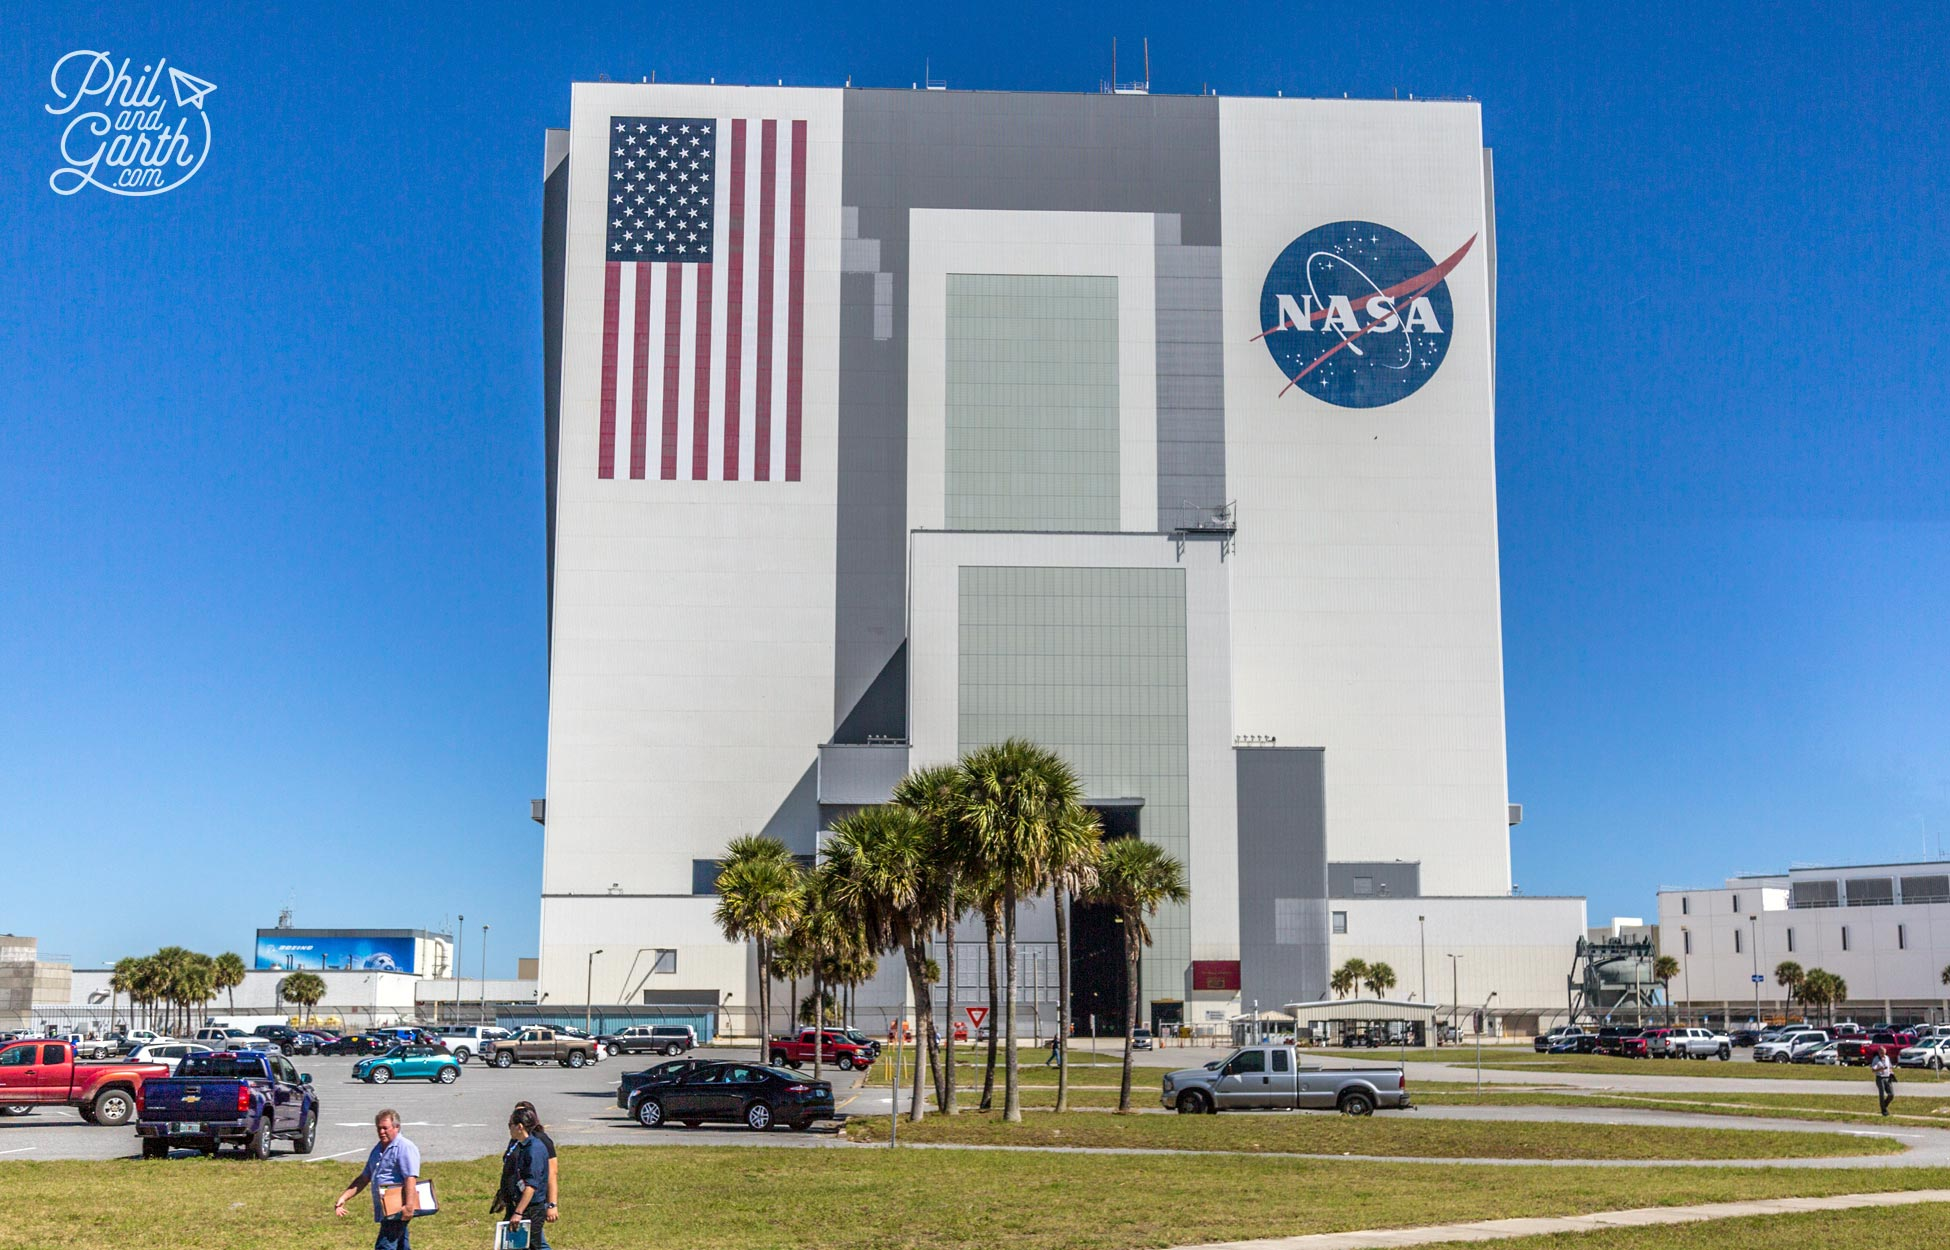 NASA's enormous Vehicle Assembly Building. It has the world's biggest doors!